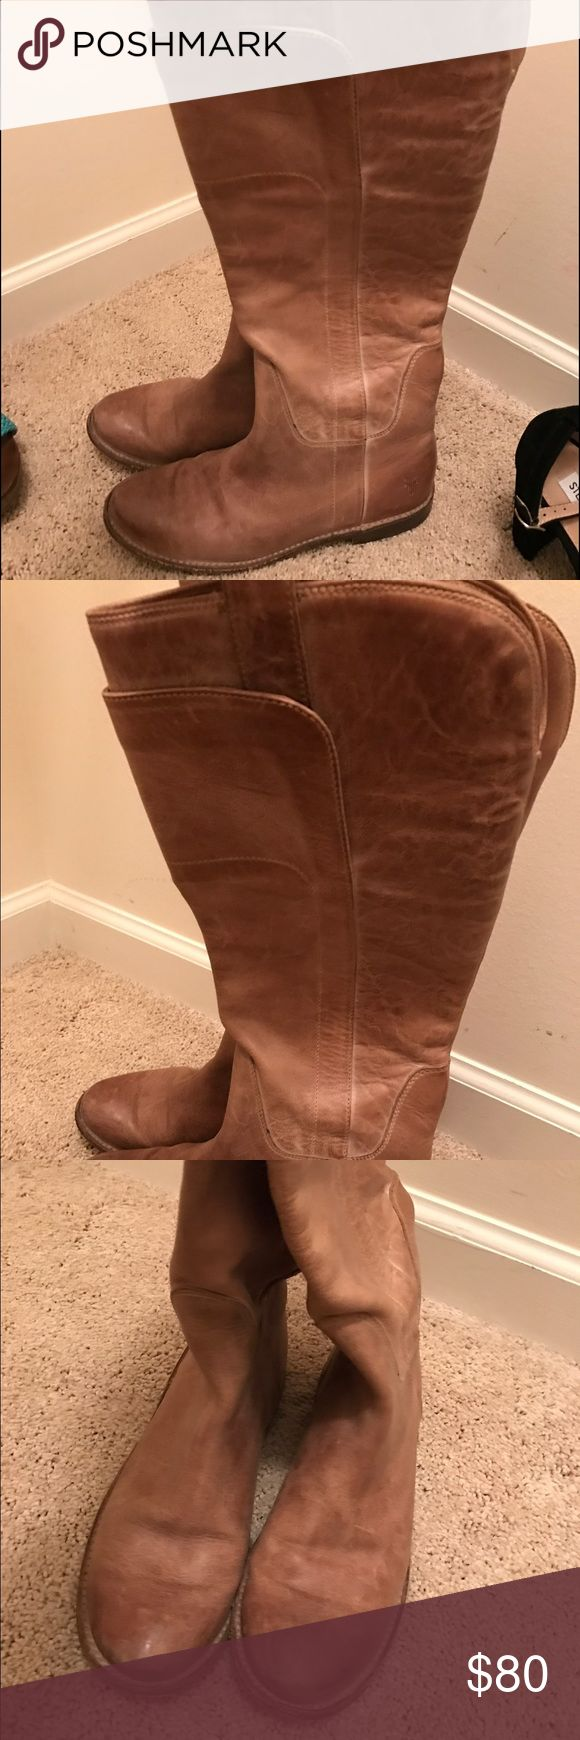 FRYE Paige women's riding boots These boots are great and so comfortable! Very worn in but still in good condition. Size 6 Frye Shoes Winter & Rain Boots